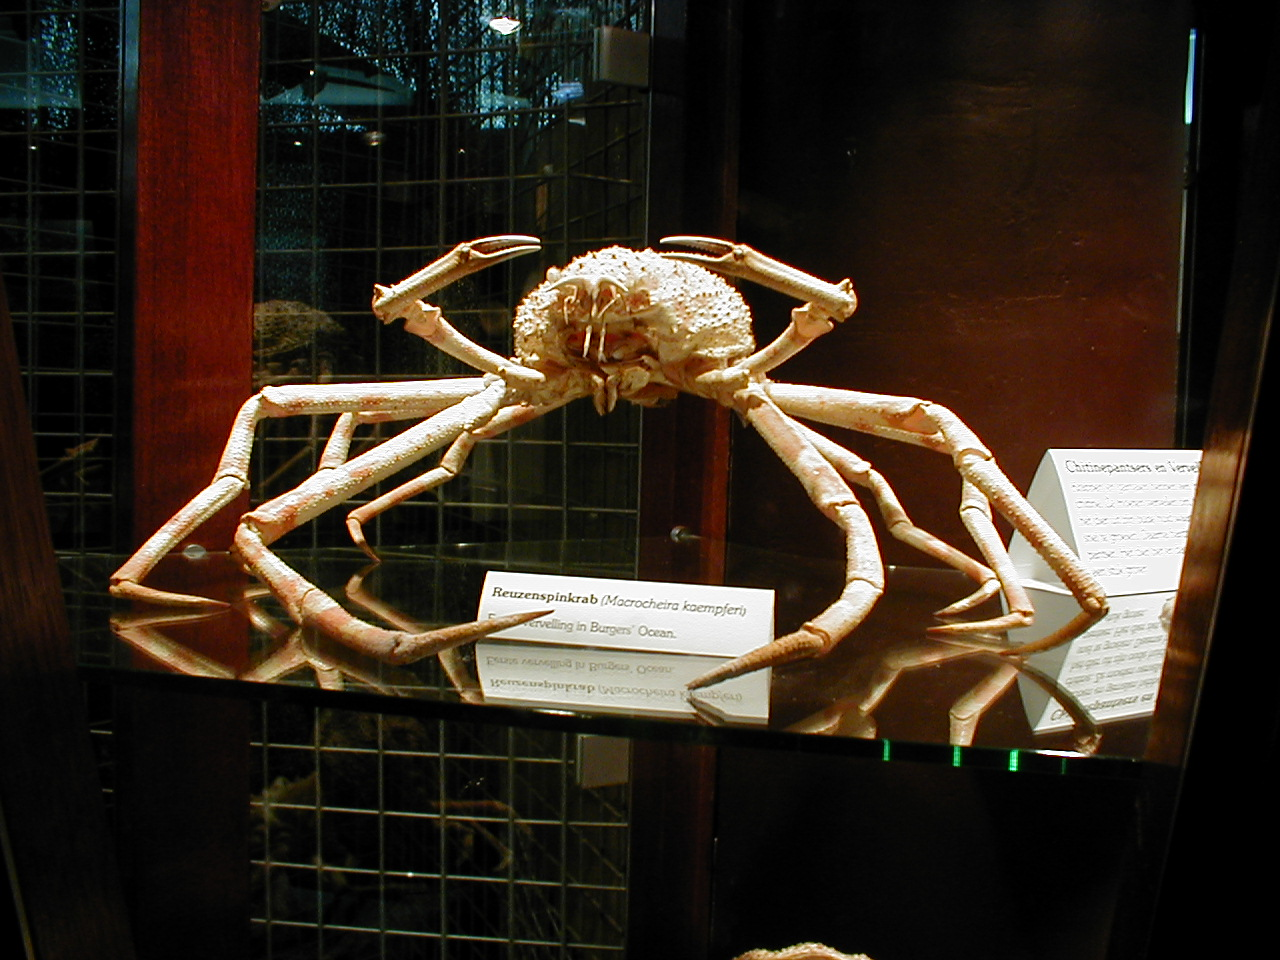 dario giant crab hit points for massive damage fossil claws legs spindly